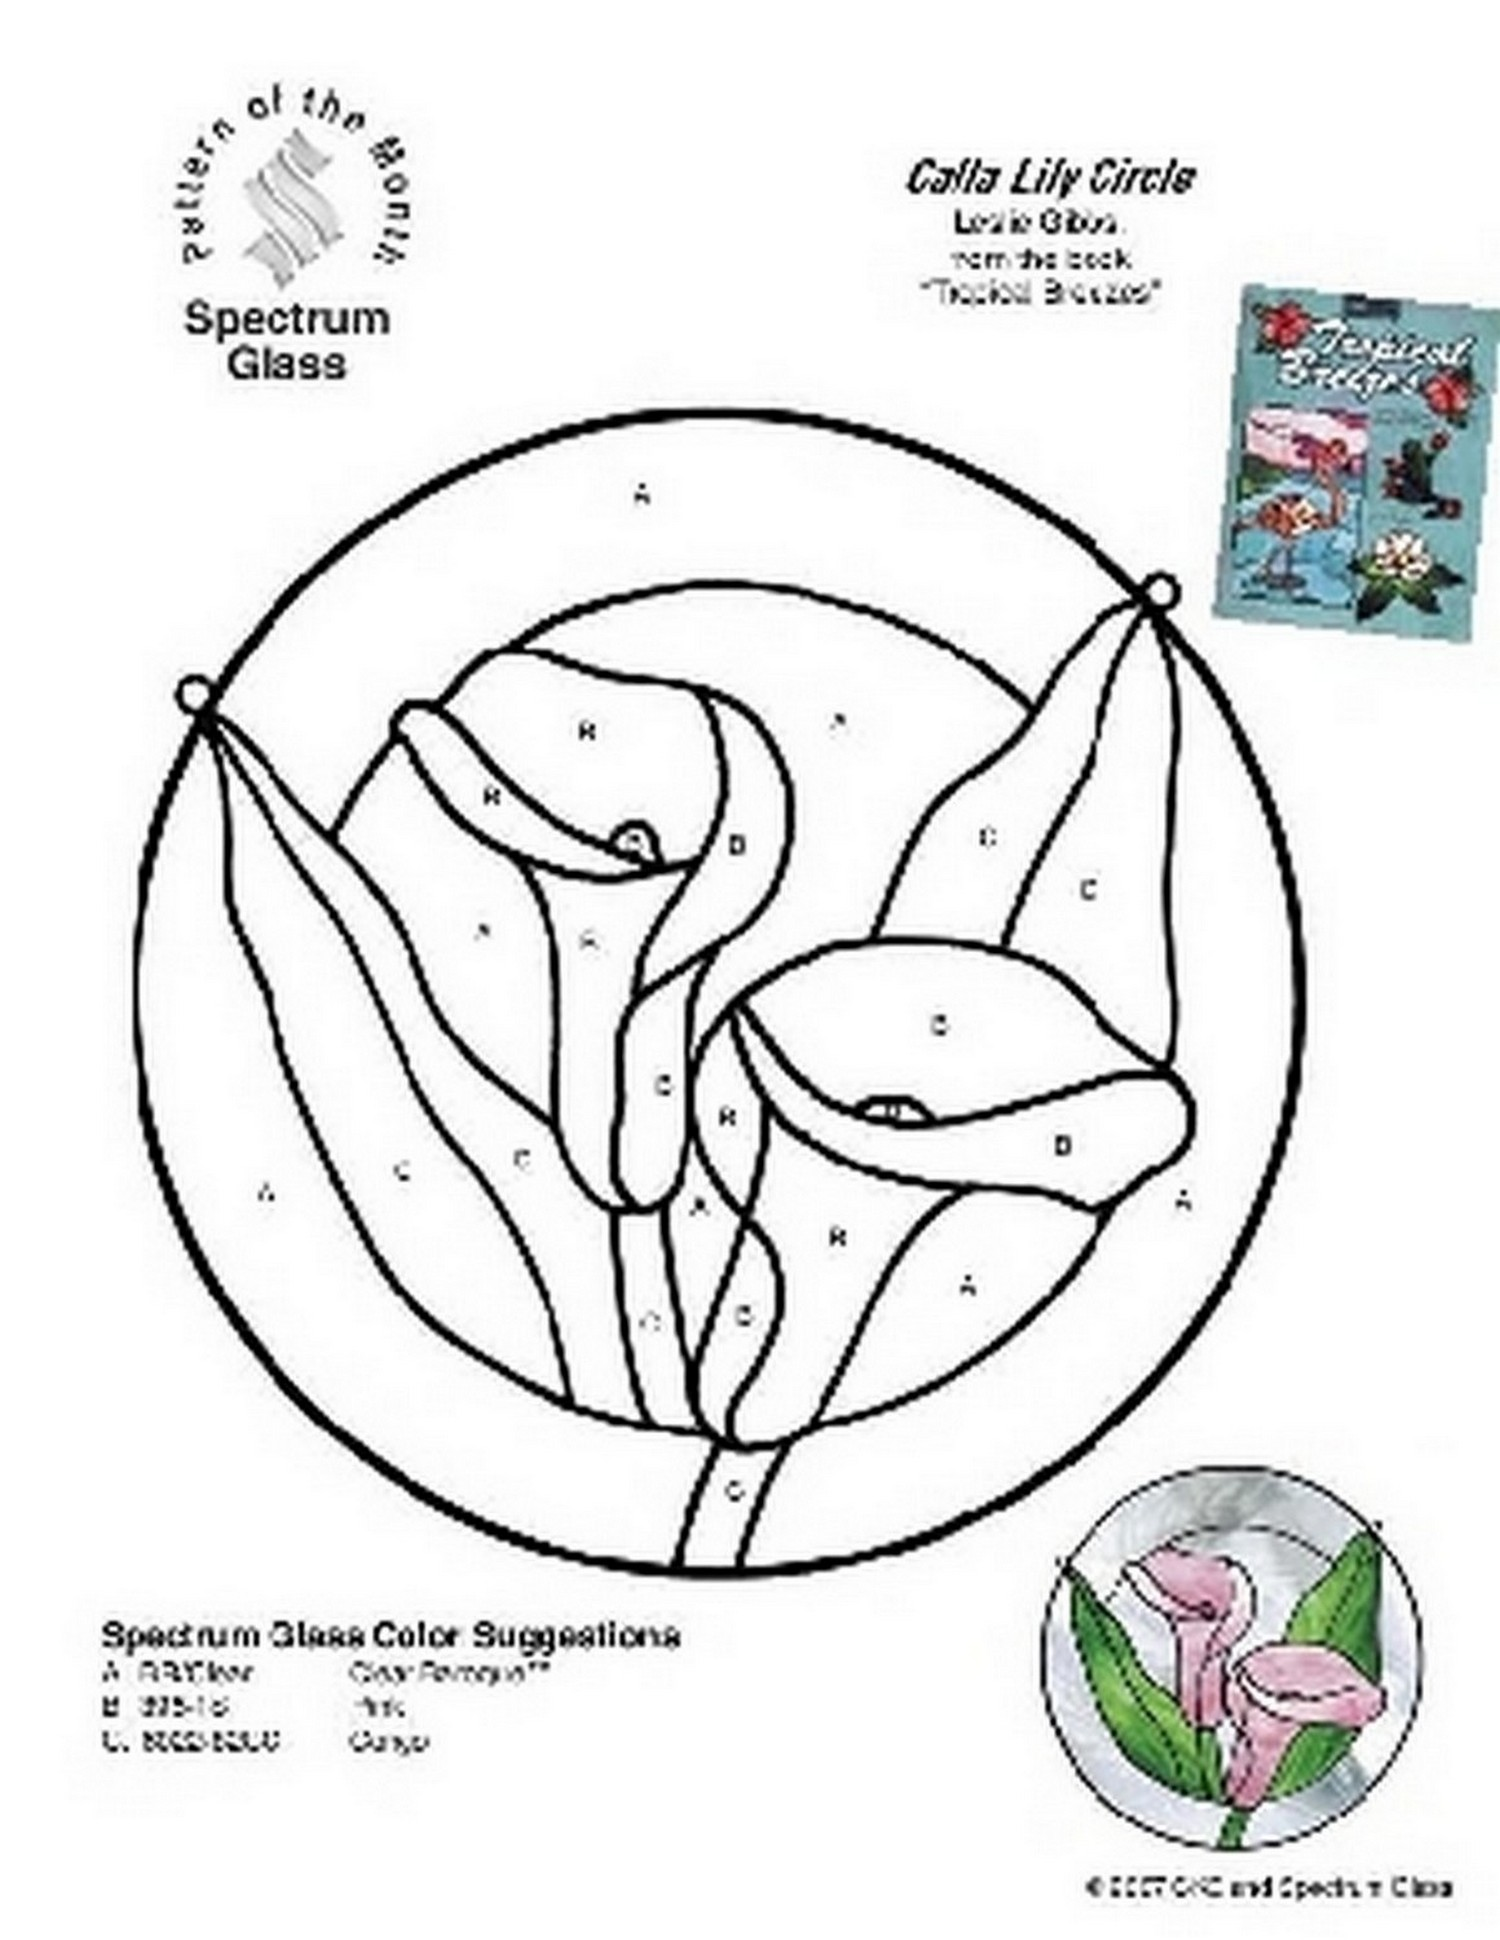 1500x1940 Free Stained Glass Pattern 2269 Calla Lily Circle Patterns By